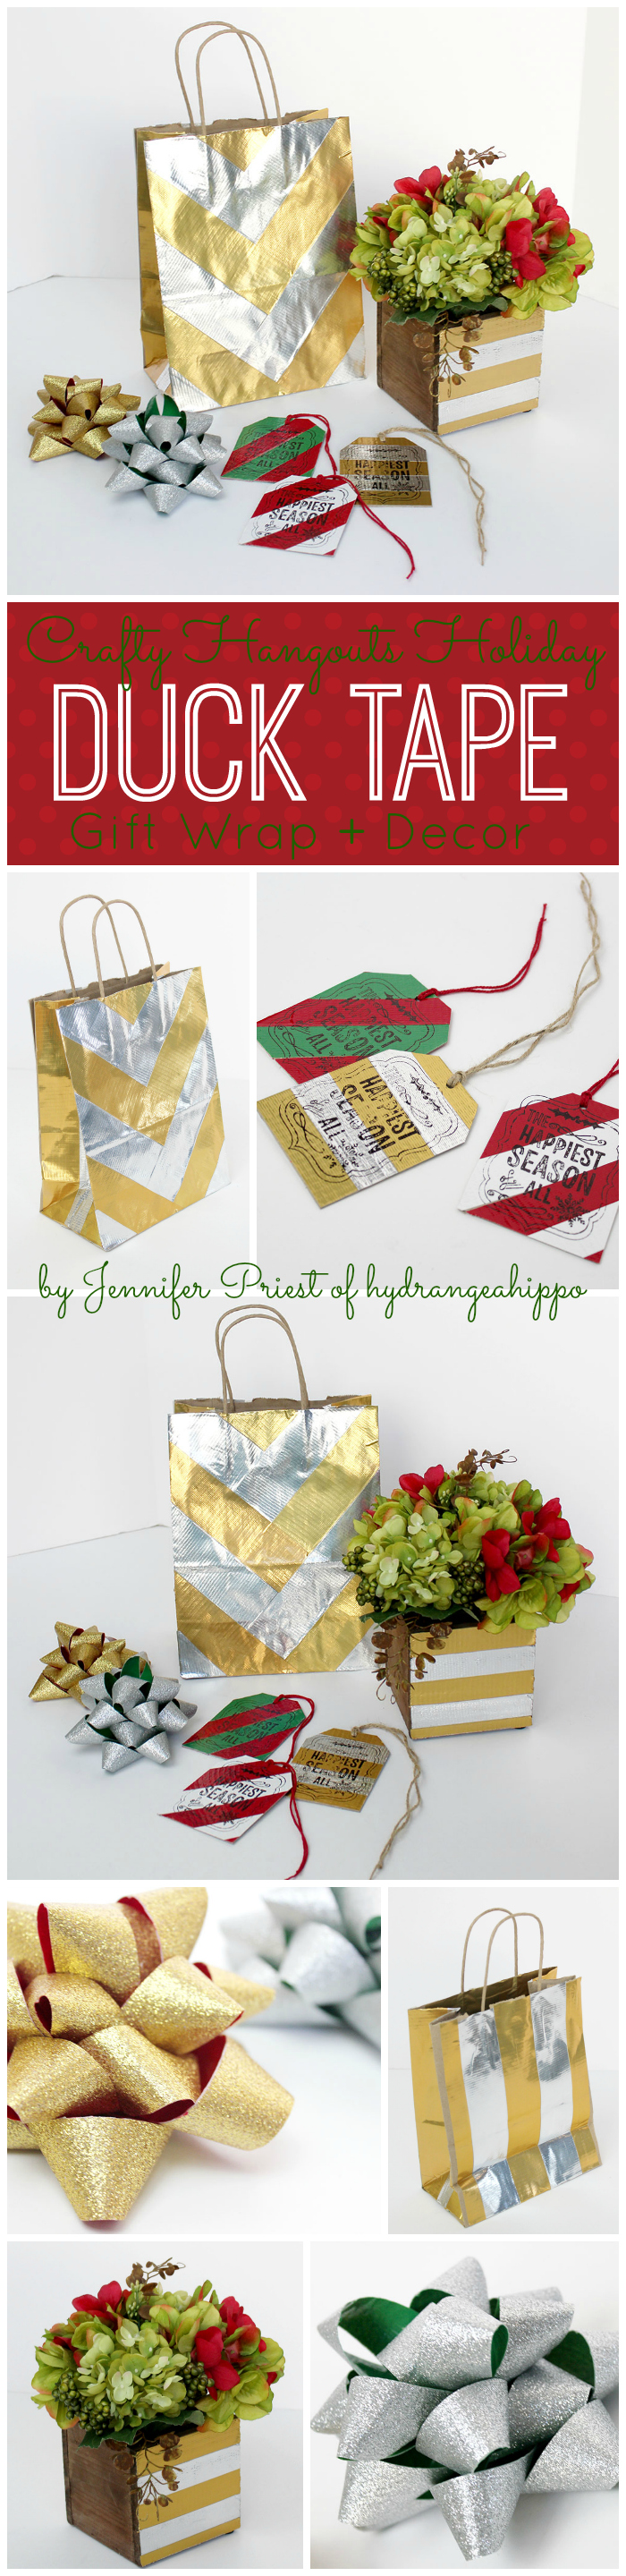 Christmas-Holiday-Duck-Tape-Projects-by-Jennifer-Priest-for-hydrangeahippo-Crafty-Hangouts-1